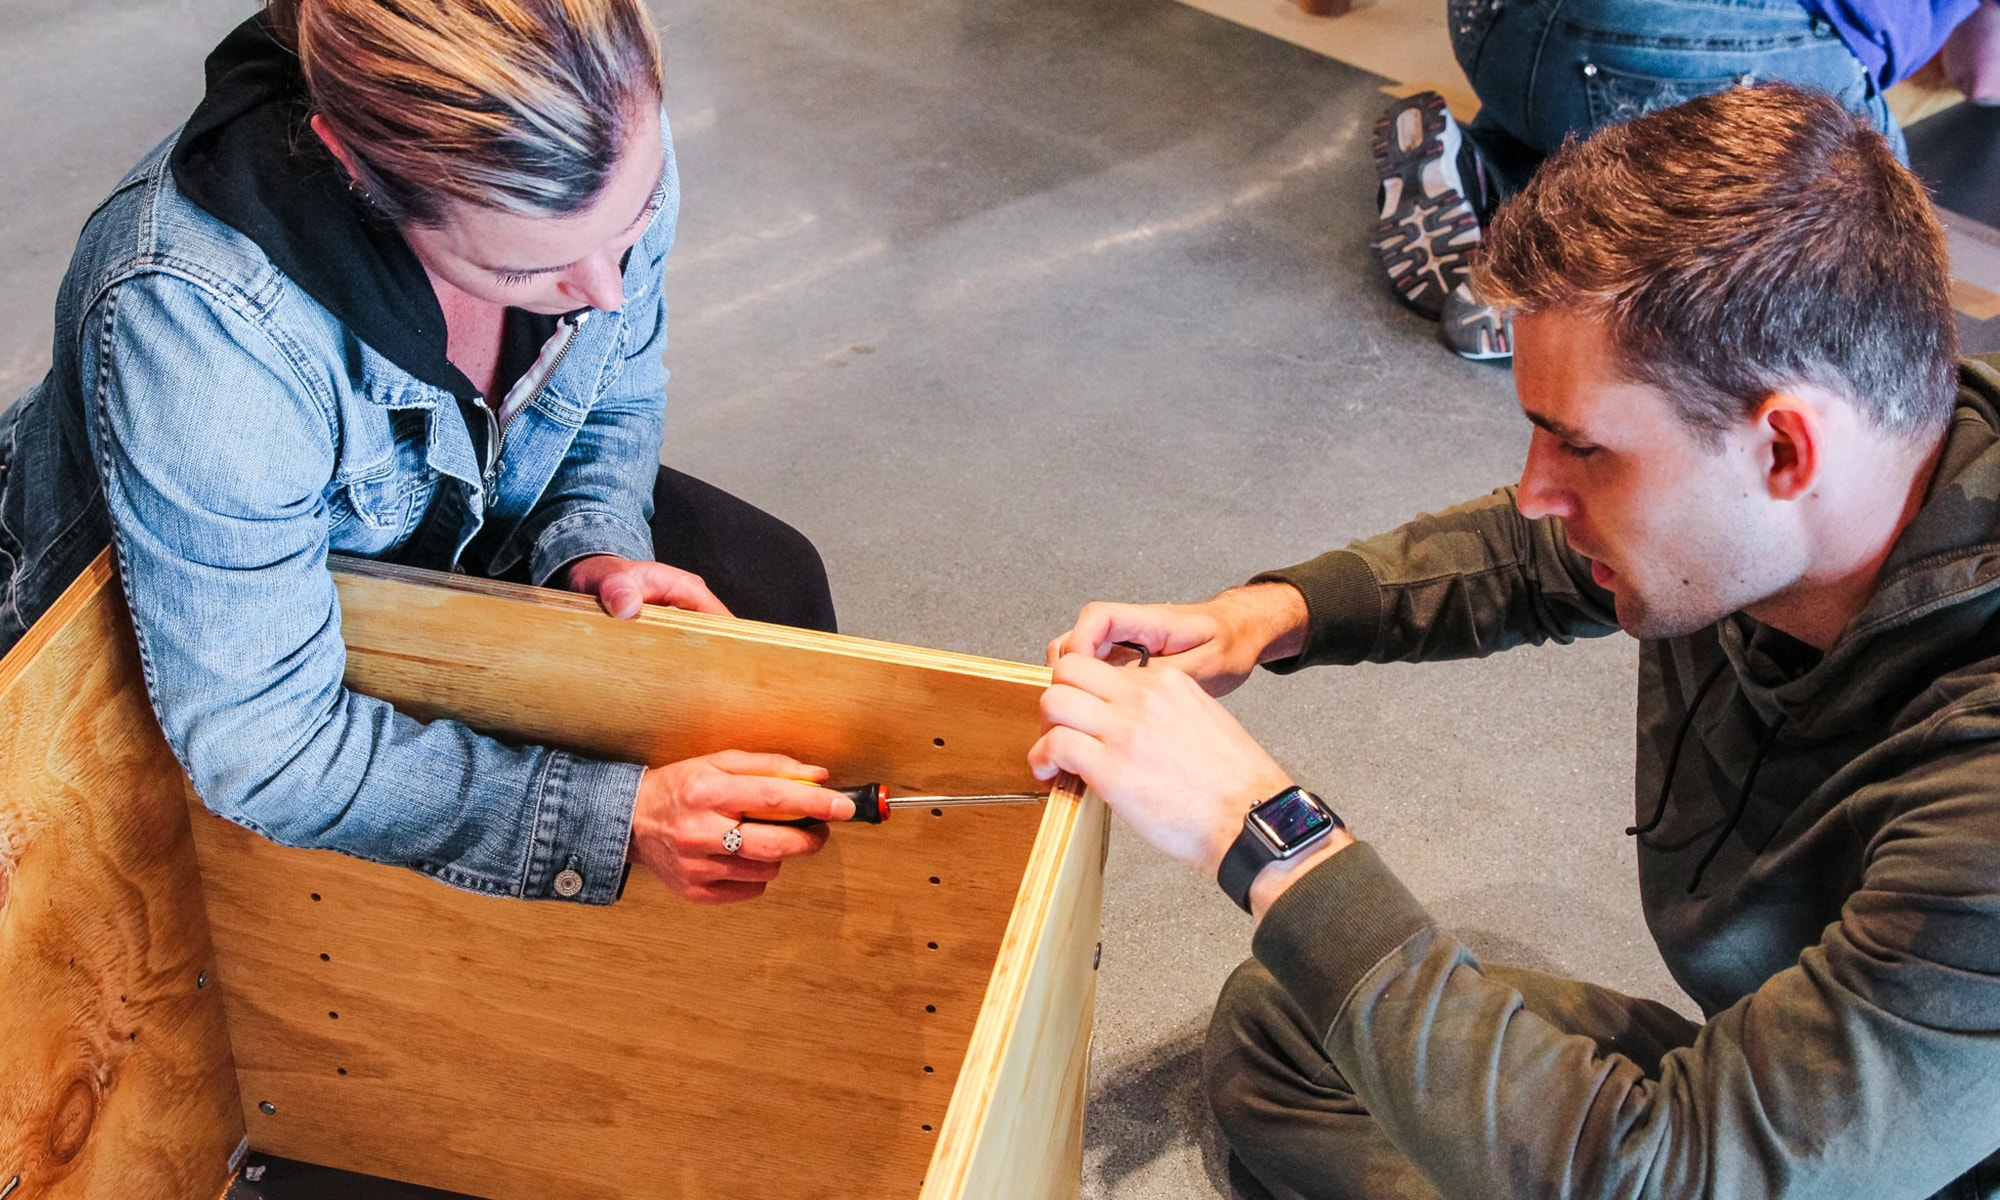 A woman and man building shelves together